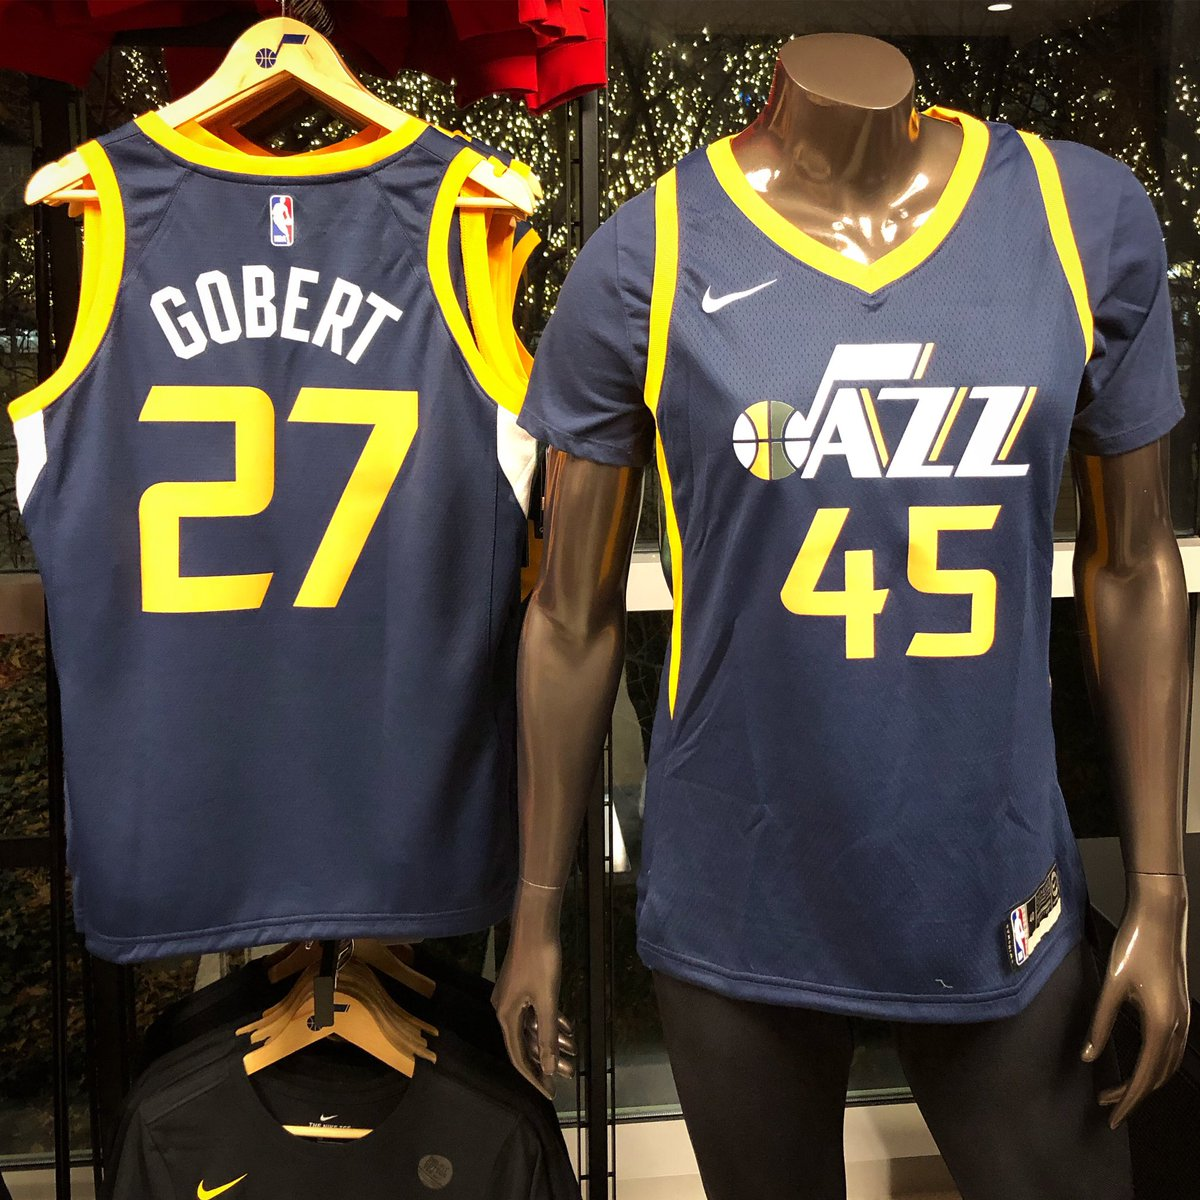 Utah Jazz Team Store on Twitter